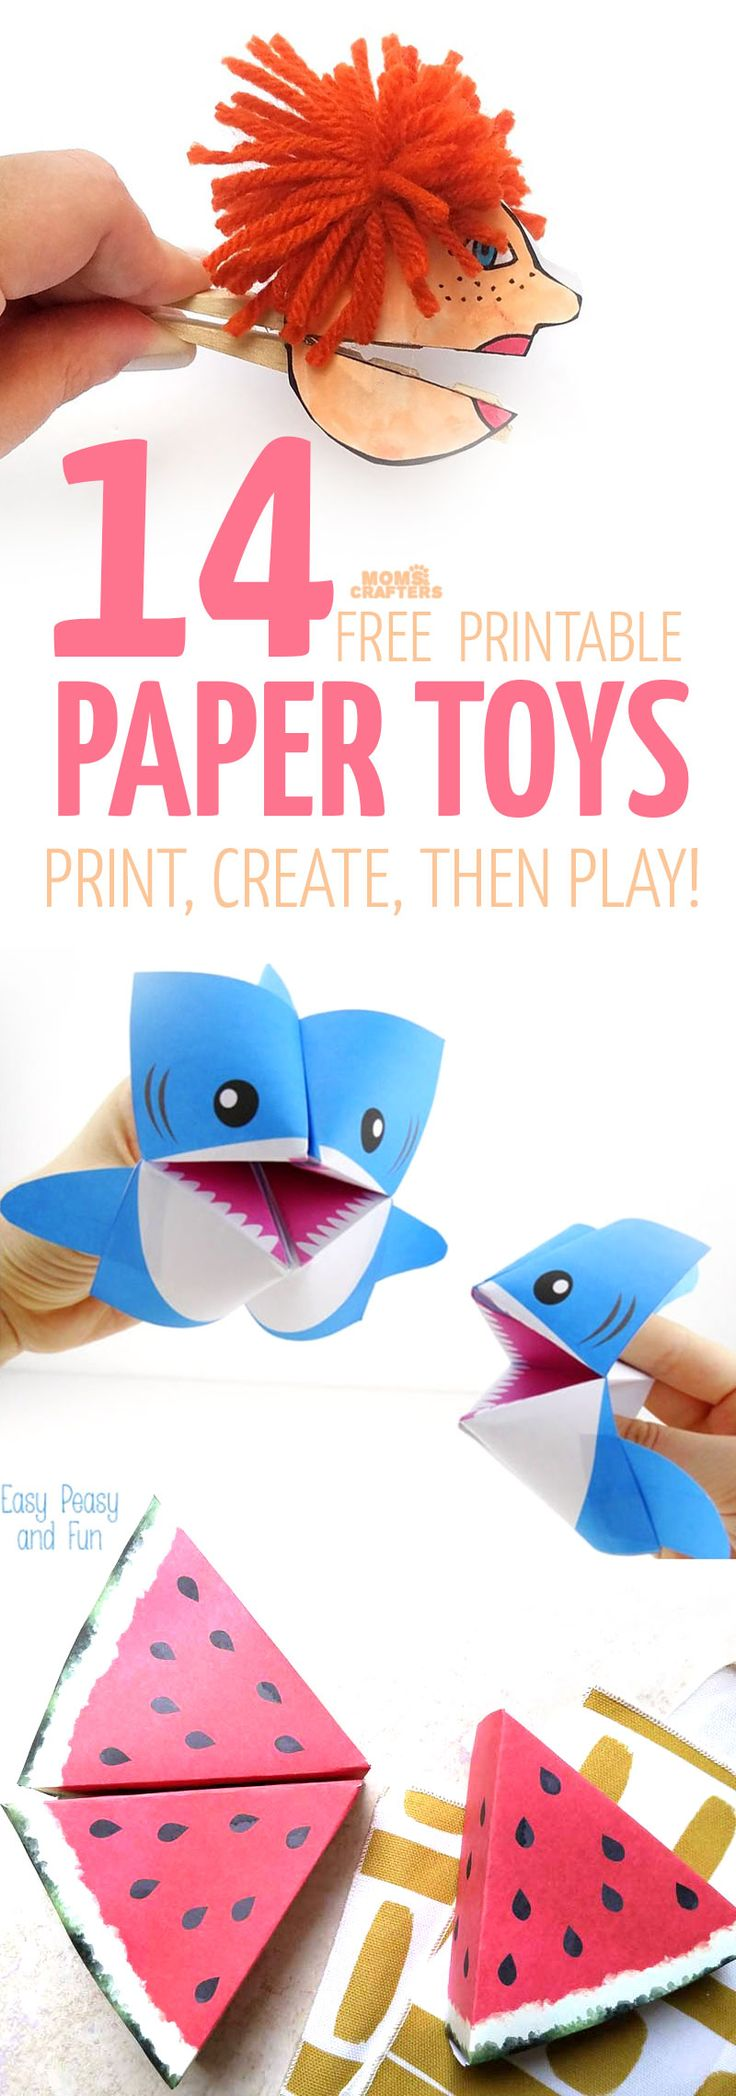 Really Cool Toys For Adults : Best paper crafting ideas on pinterest manualidades